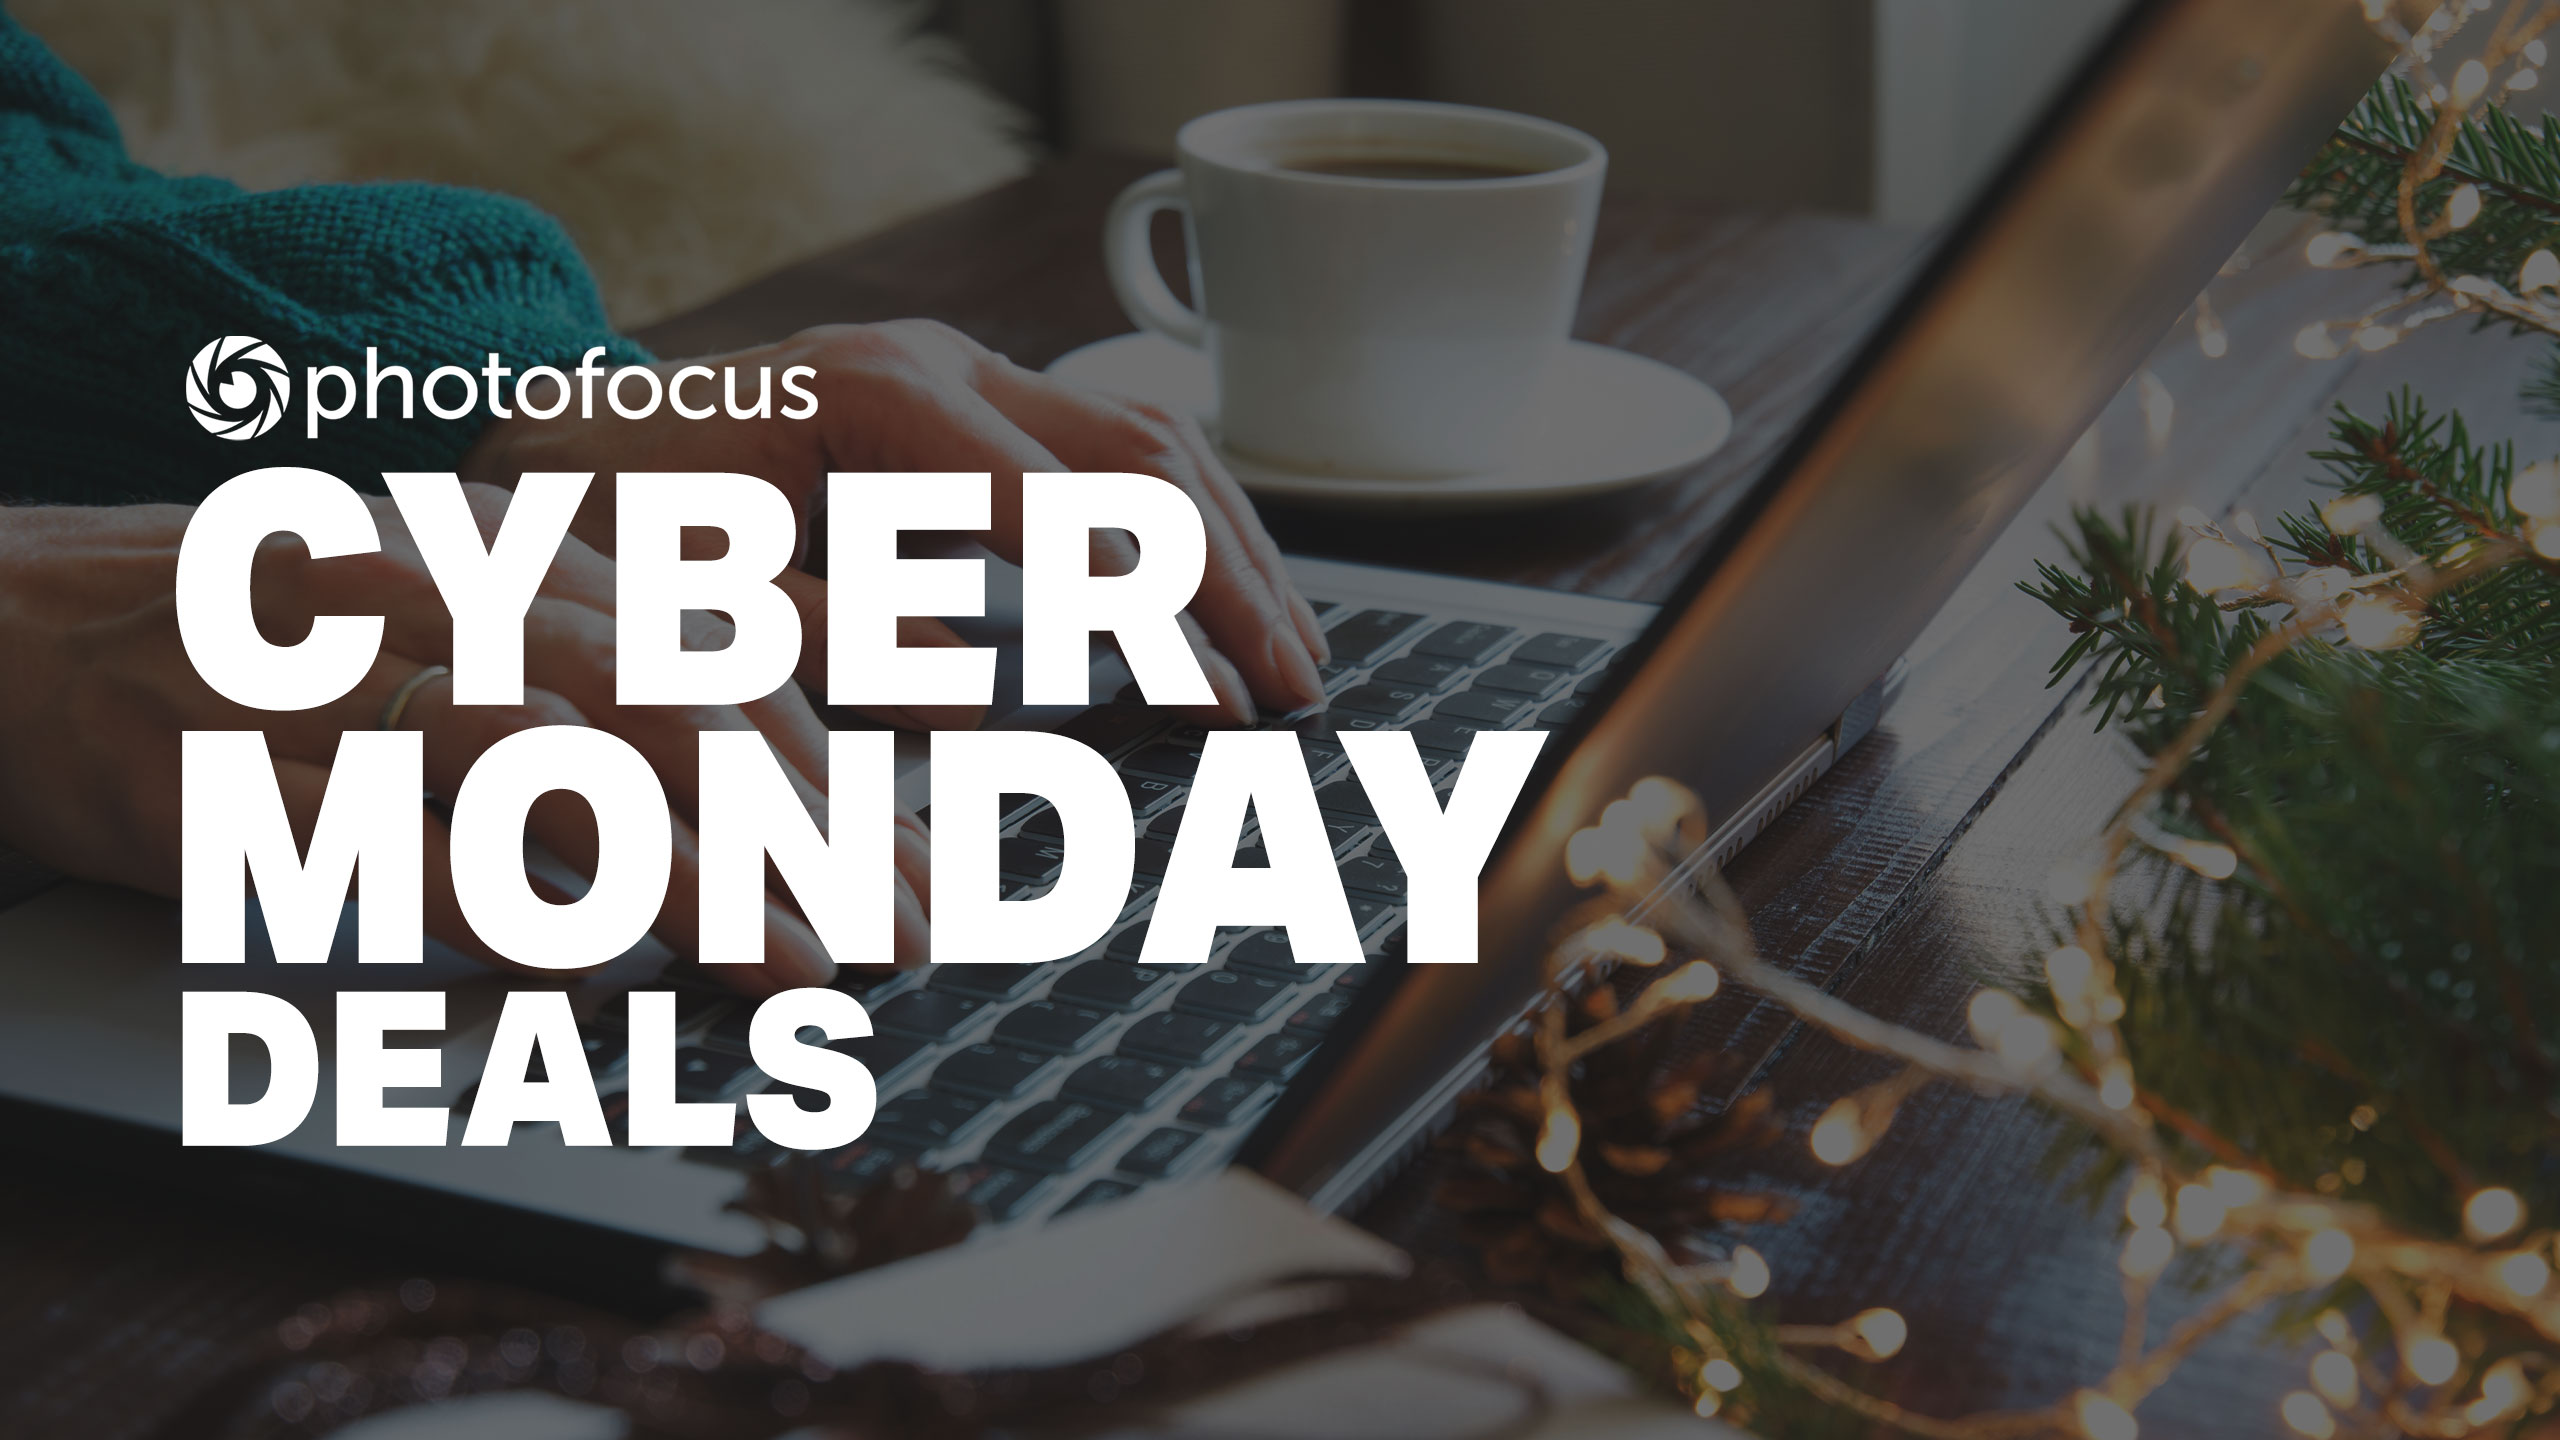 Take advantage of holiday savings with these Cyber Monday deals